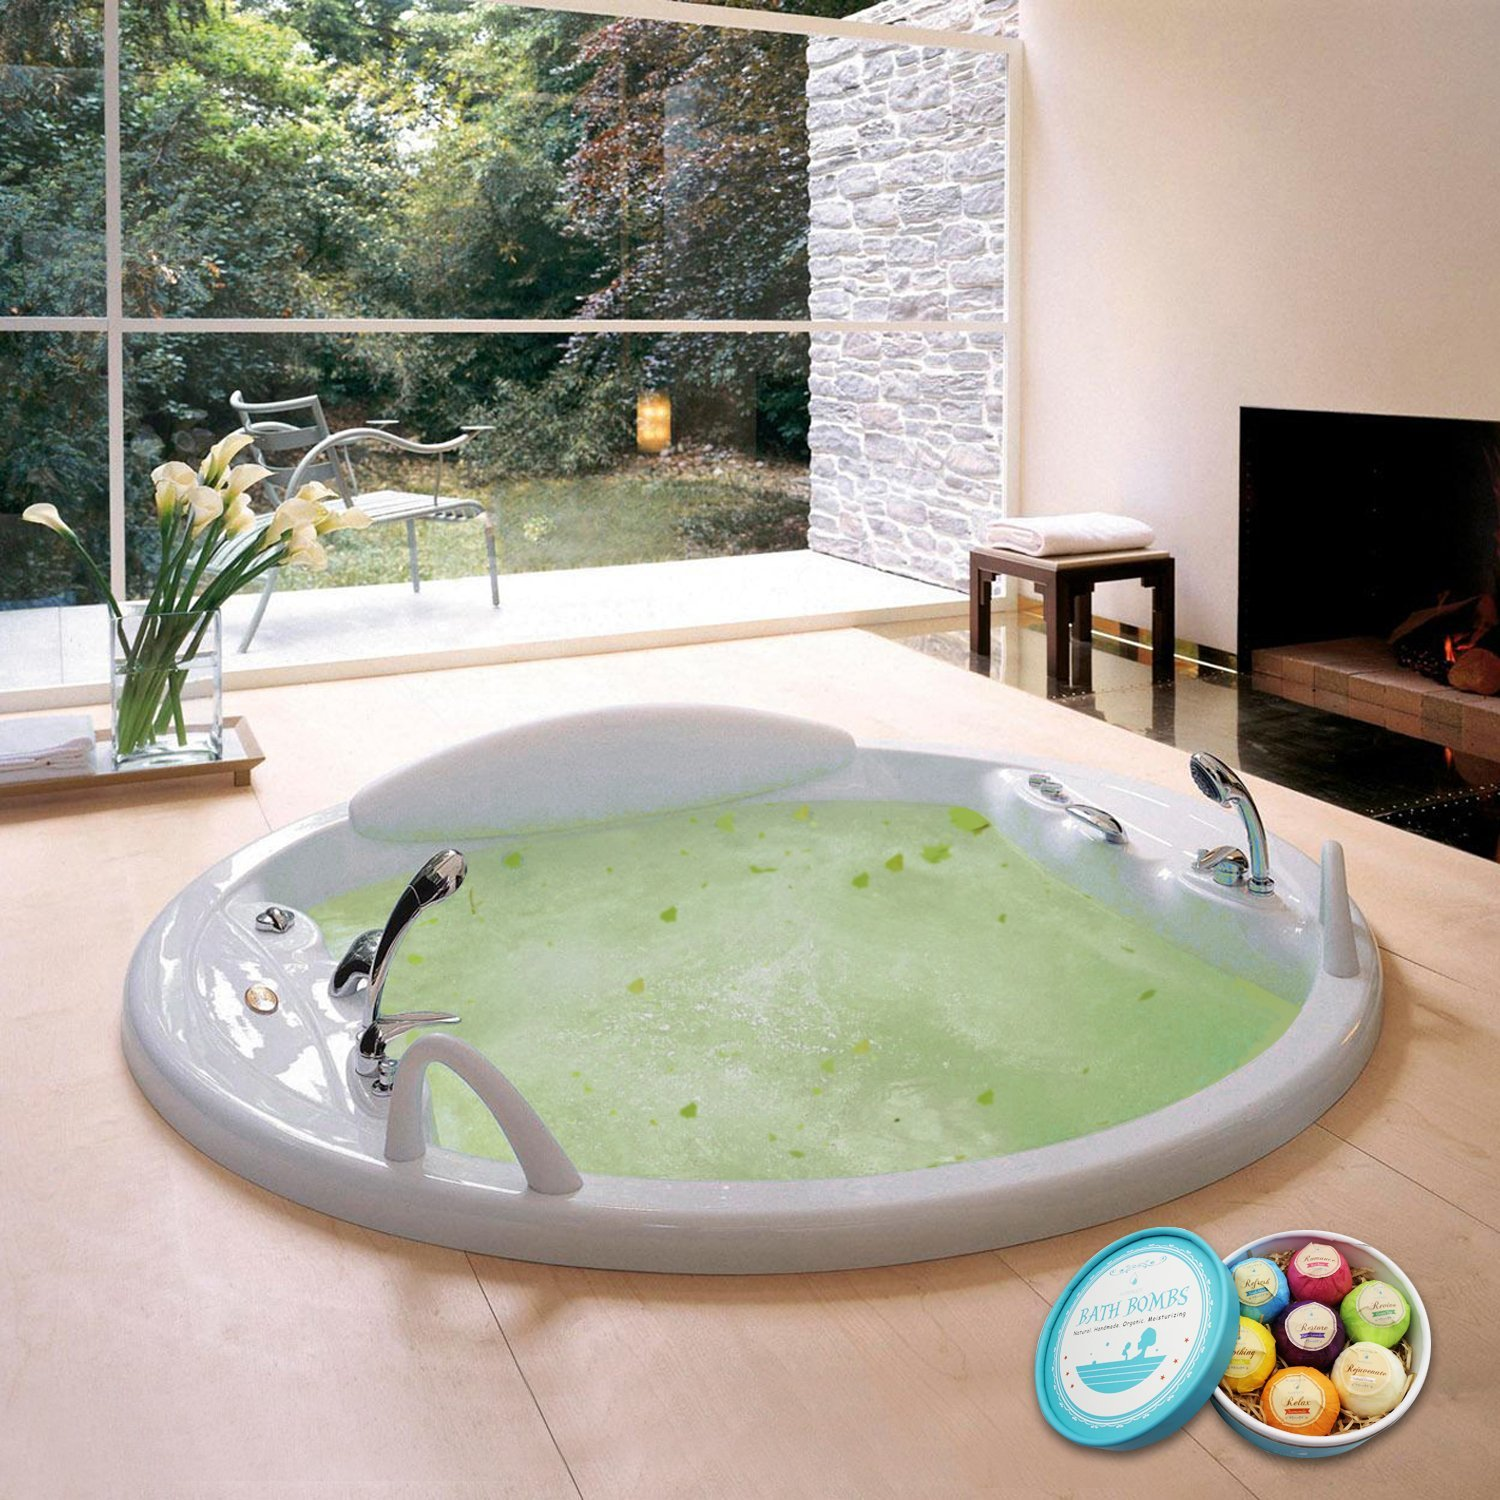 852 Bathtub Data Base Emails Contact Us Hk Mail: PURENJOY Bath Bombs Gift Set Kit